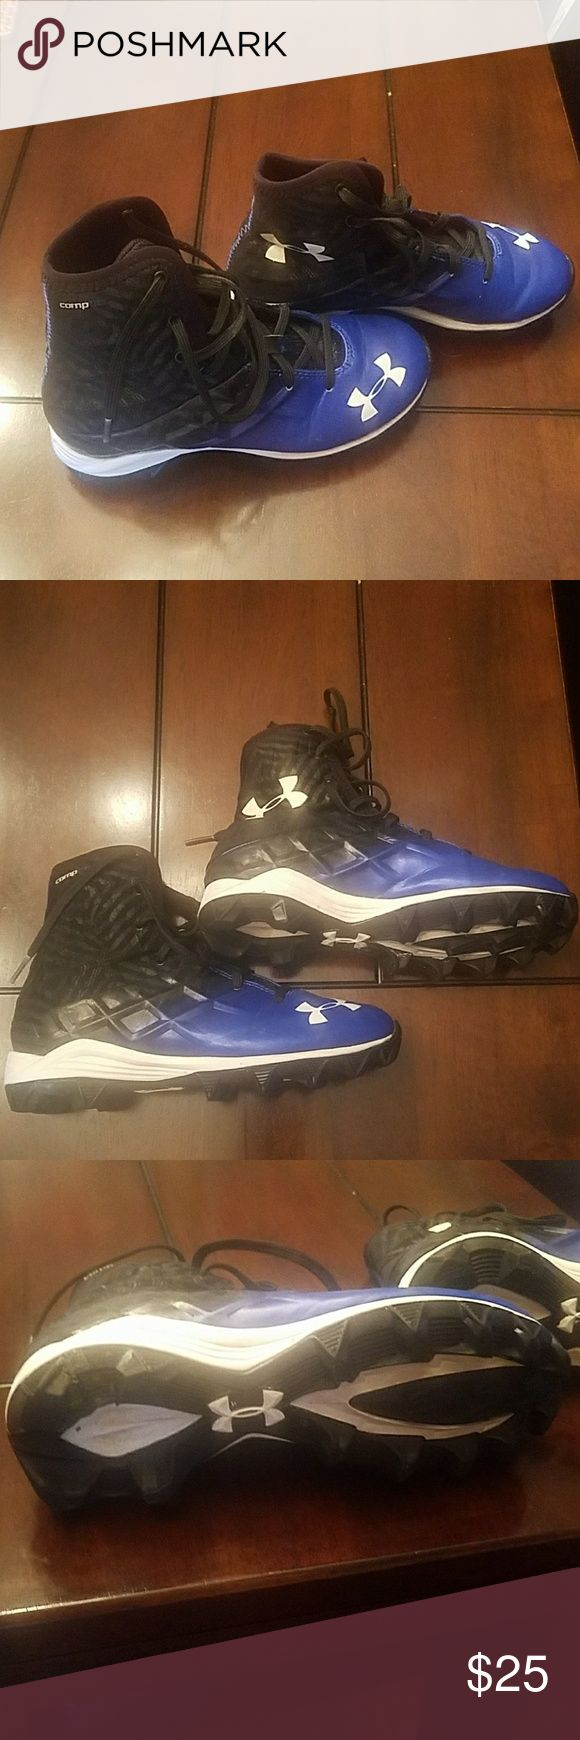 Under Armour High Top Football Cleats - size 3 Royal blue and black Youth boys football cleat - size 3  High top cleat  Worn 1 season.  Easily can be used for 1 season or as a practice cleat Under Armour Shoes Sneakers